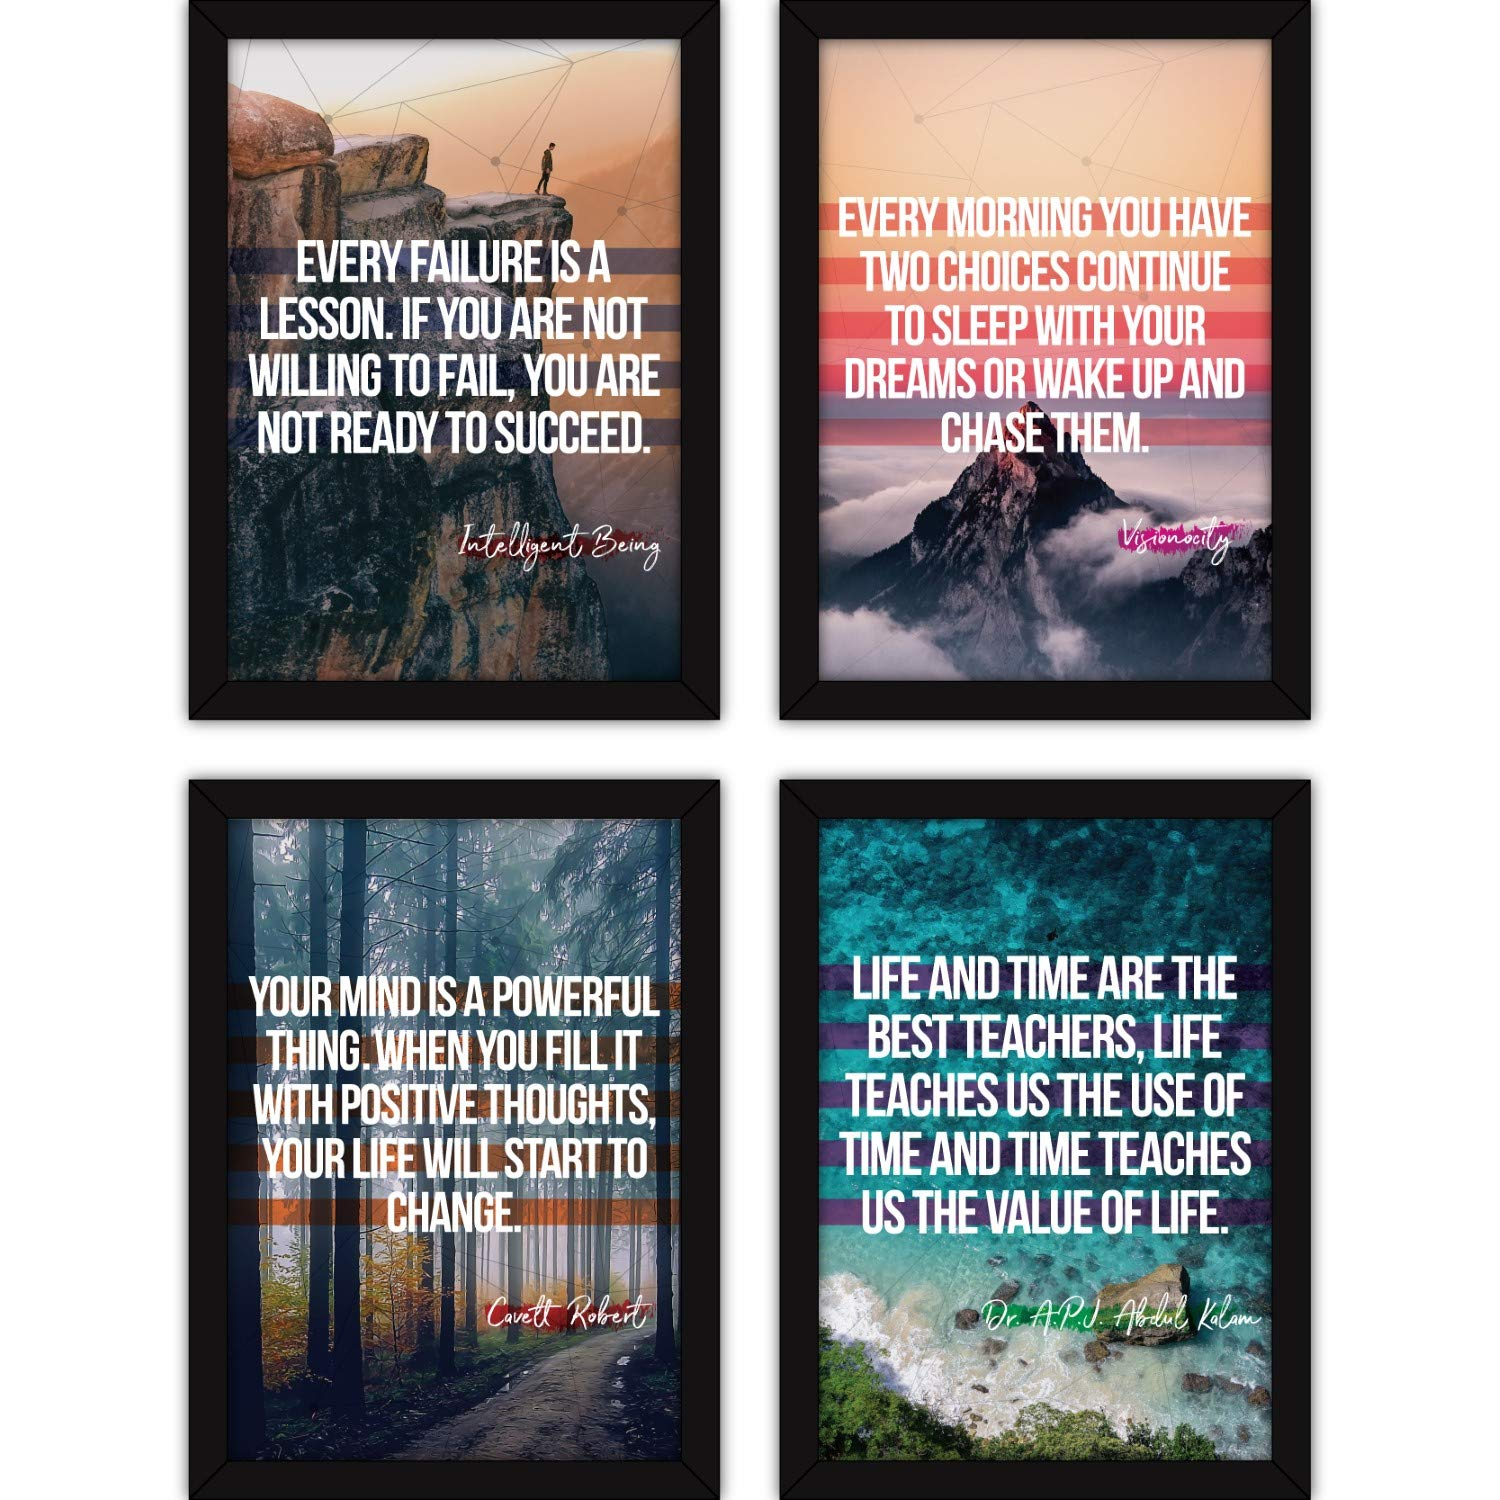 FATMUG Framed Dreams Wall Paintings Life Quotes for Office Decor and Home with Glass (Synthetic, Multicolour) - Set of 4 (B07MHSVXX7) Amazon Price History, Amazon Price Tracker